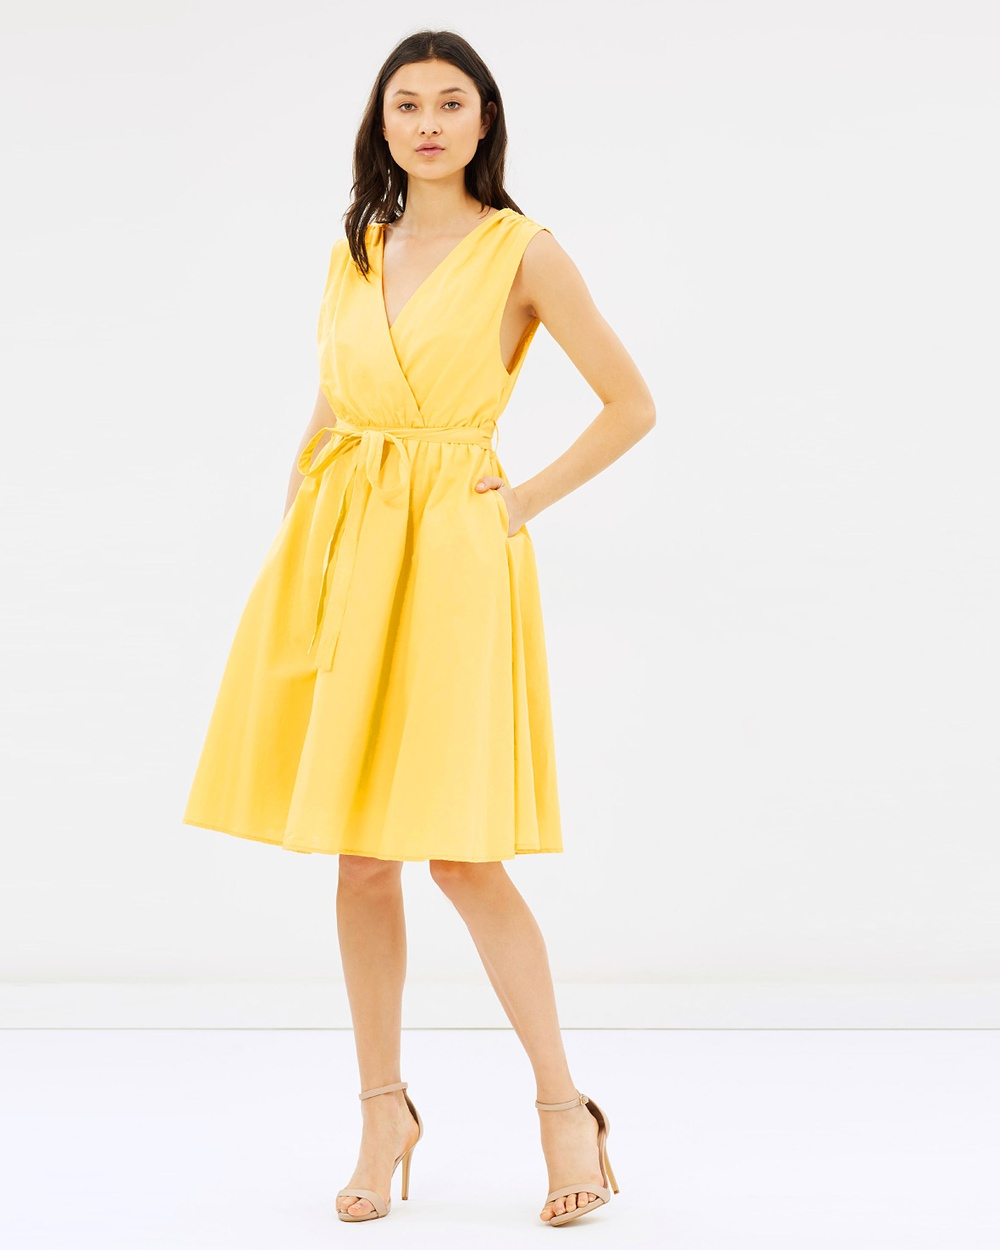 IMONNI Belle Dress Dresses Canary Belle Dress